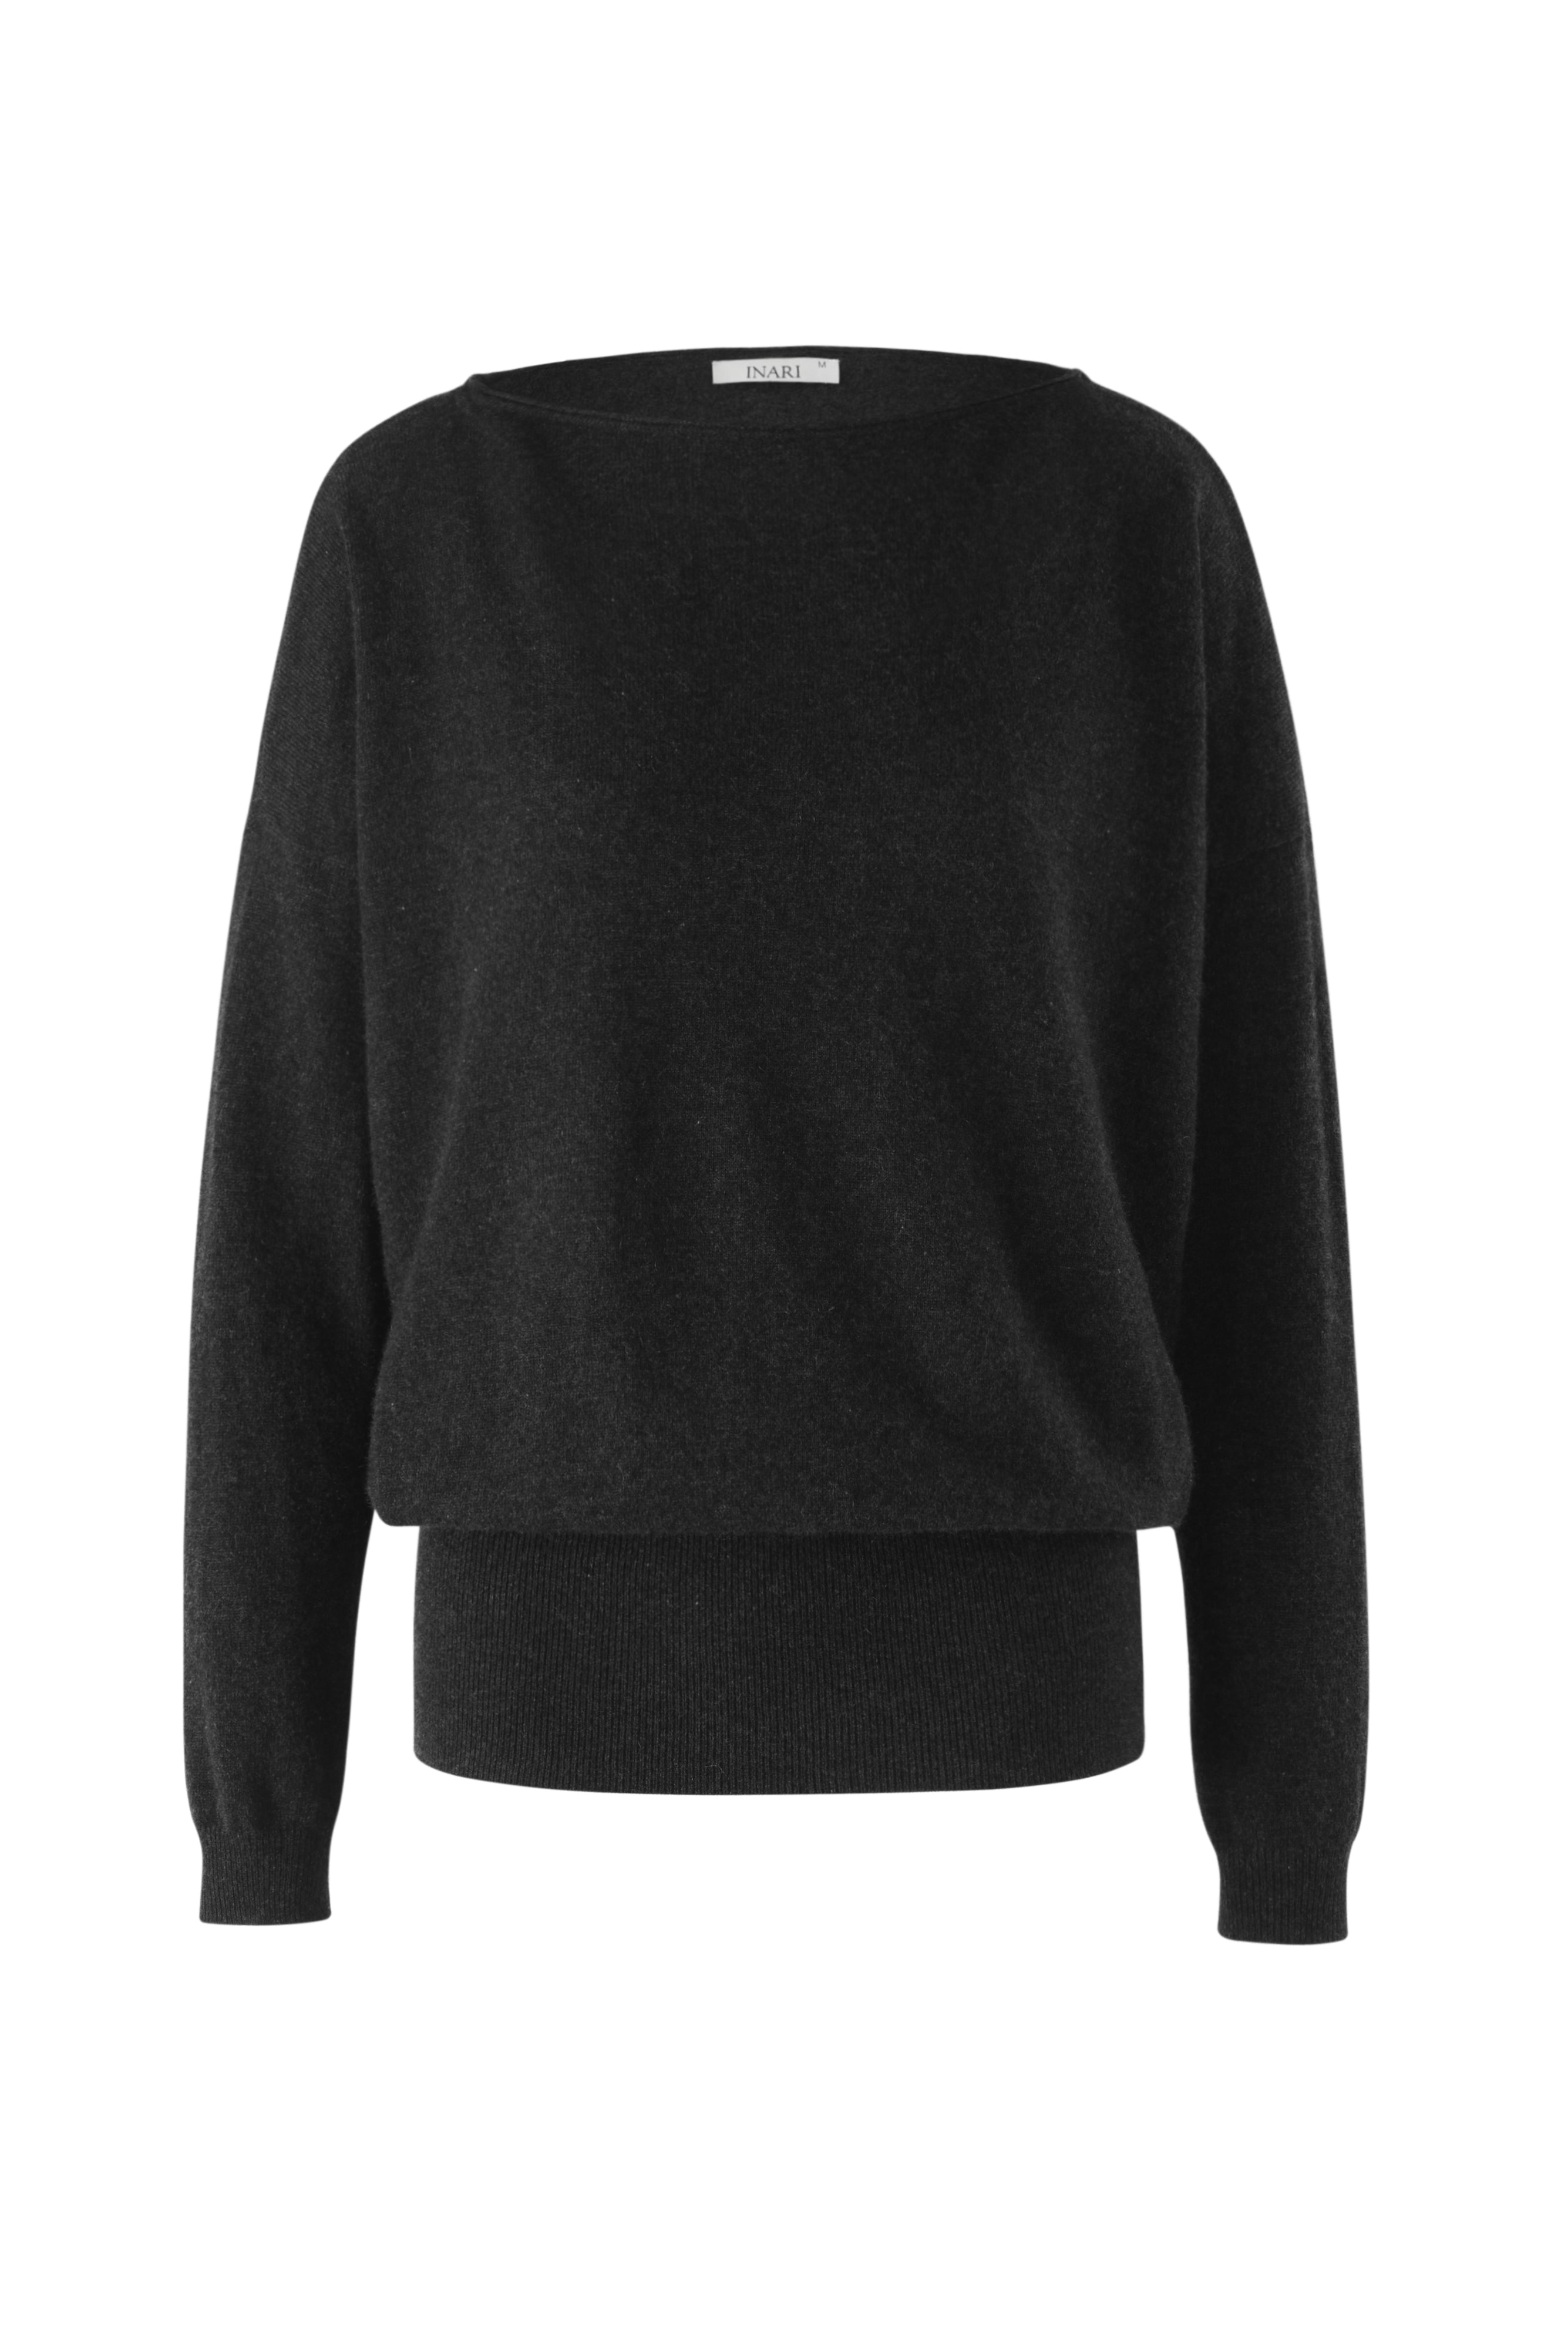 Inari Women's black cashmere O-neck sweater - front side - 100% high-quality cashmere